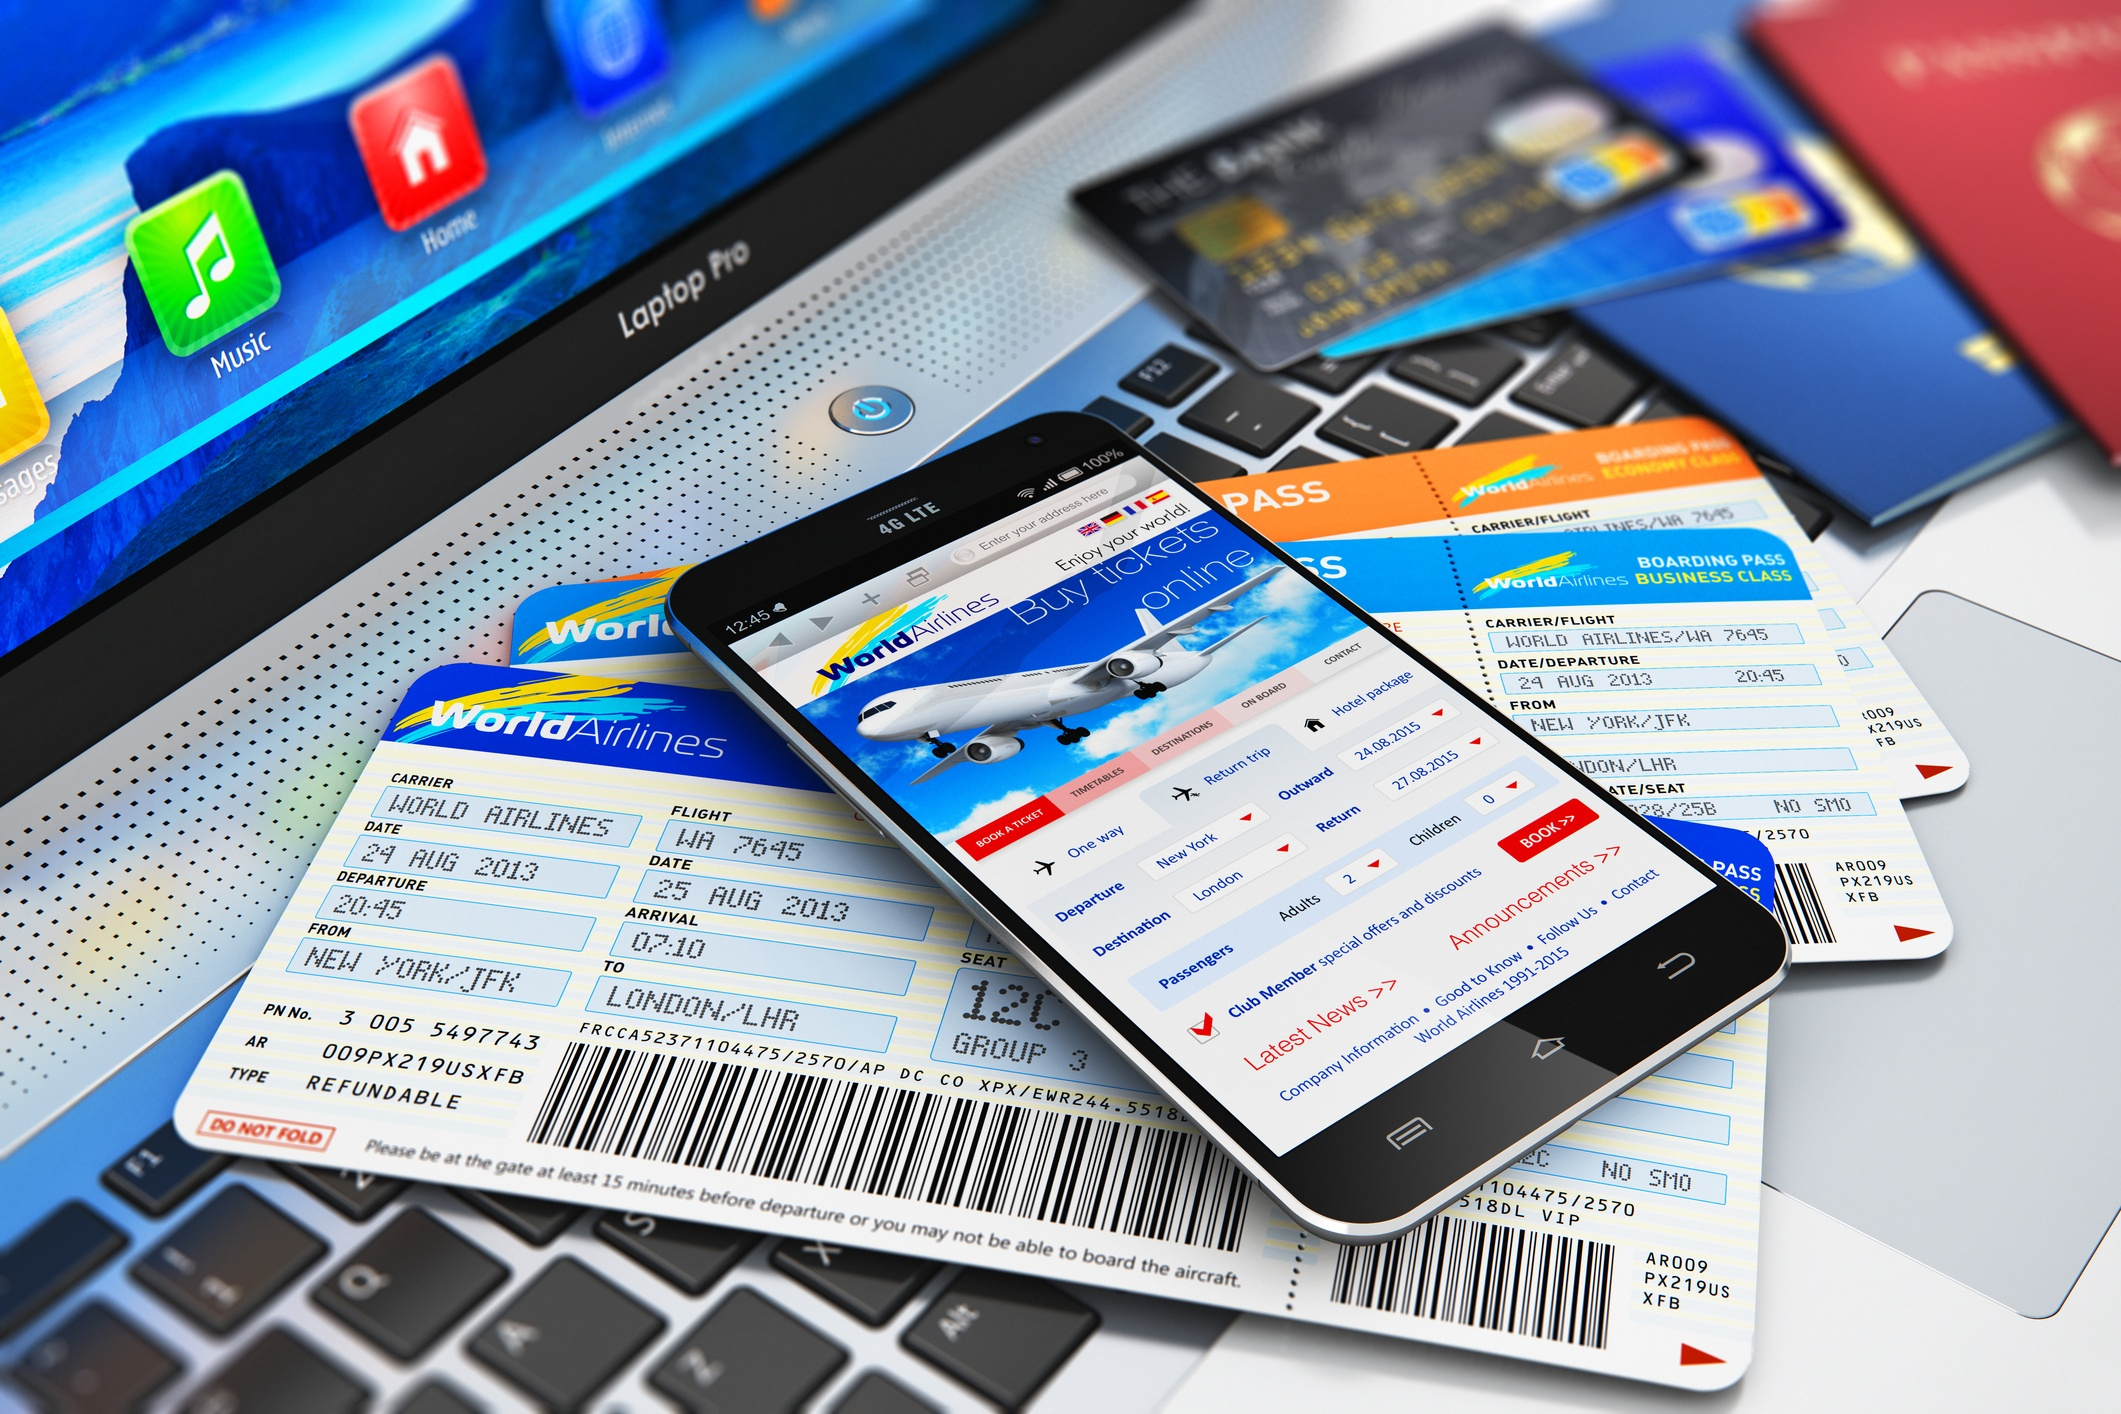 digital travel image- smartphone with boarding pass